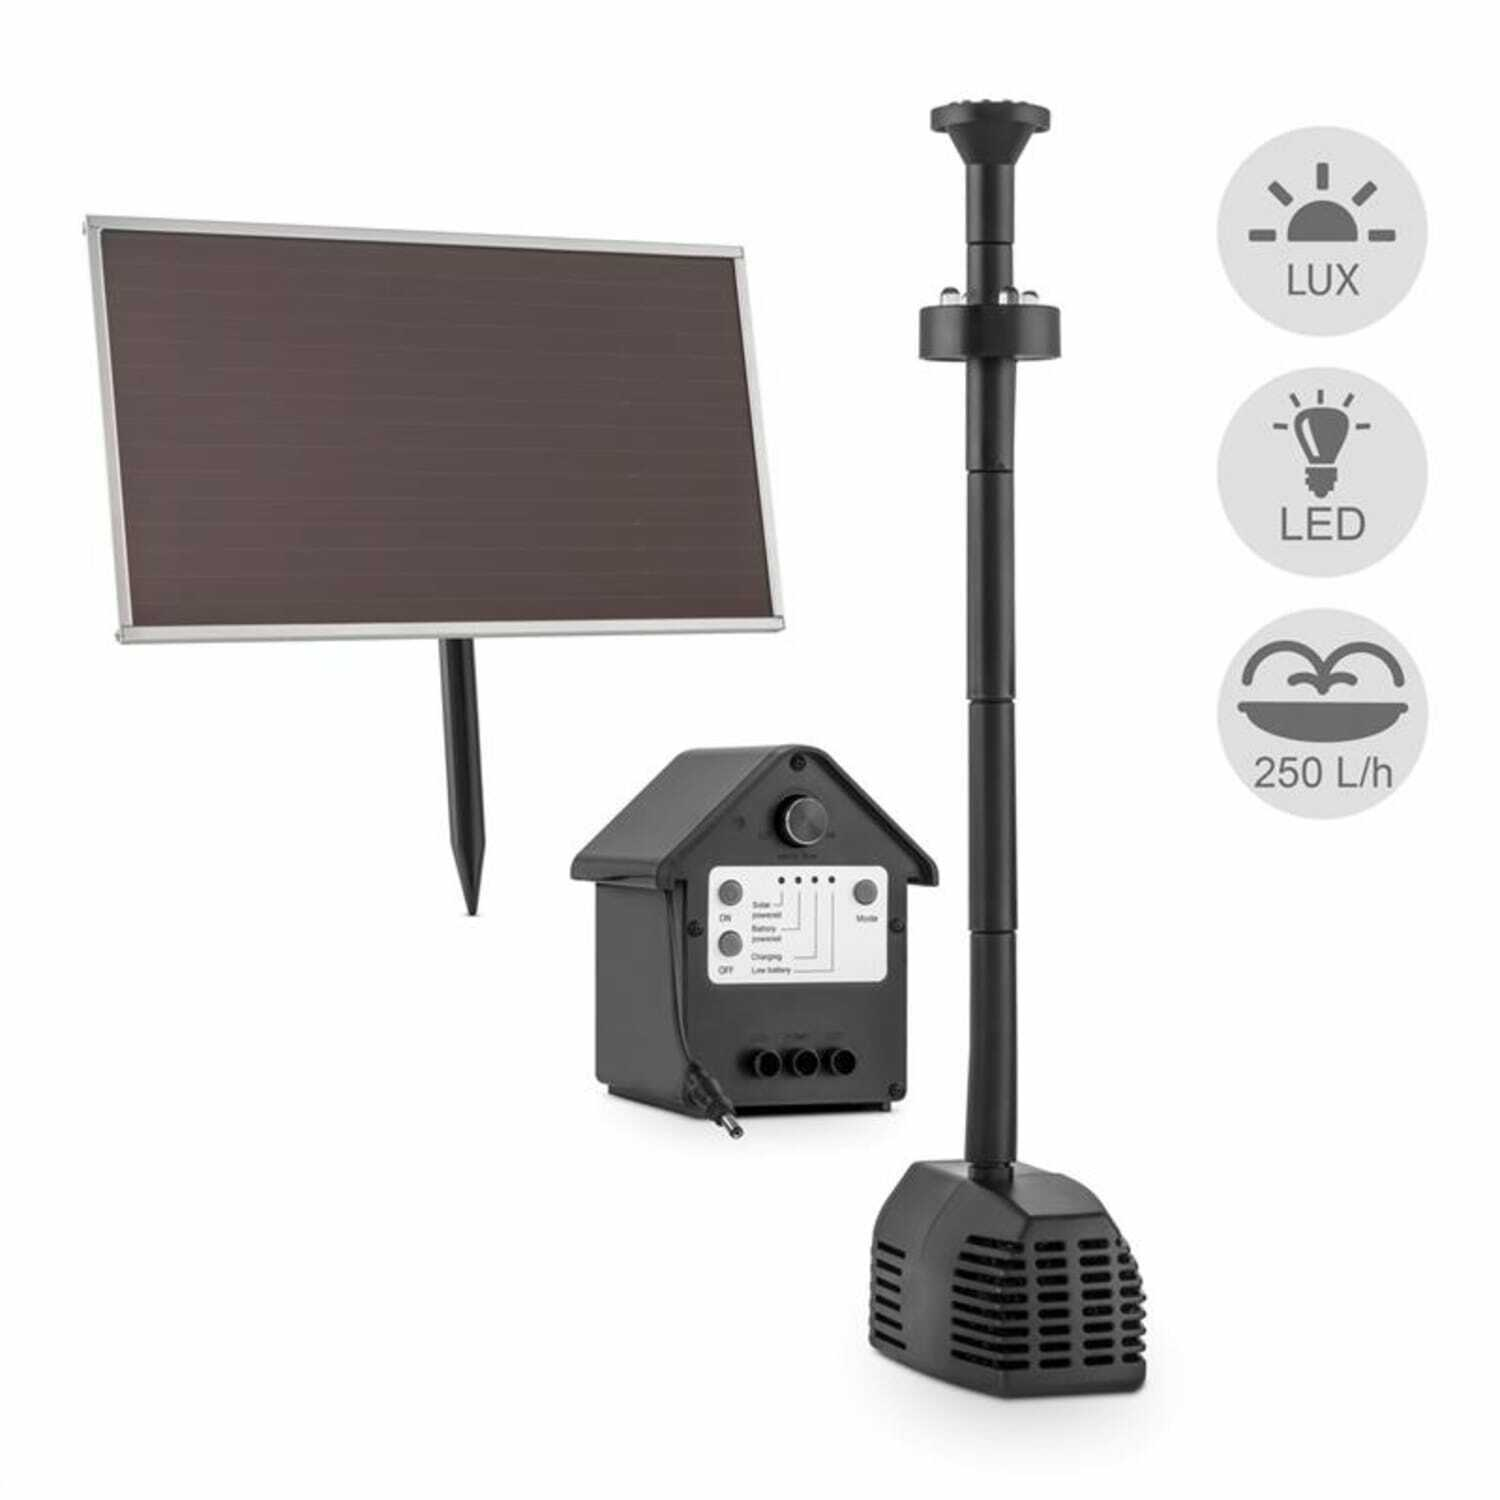 led solarpumpe mit akku f r gartenteich springbrunnen teichpumpe gartenbrunnen eur 47 99. Black Bedroom Furniture Sets. Home Design Ideas